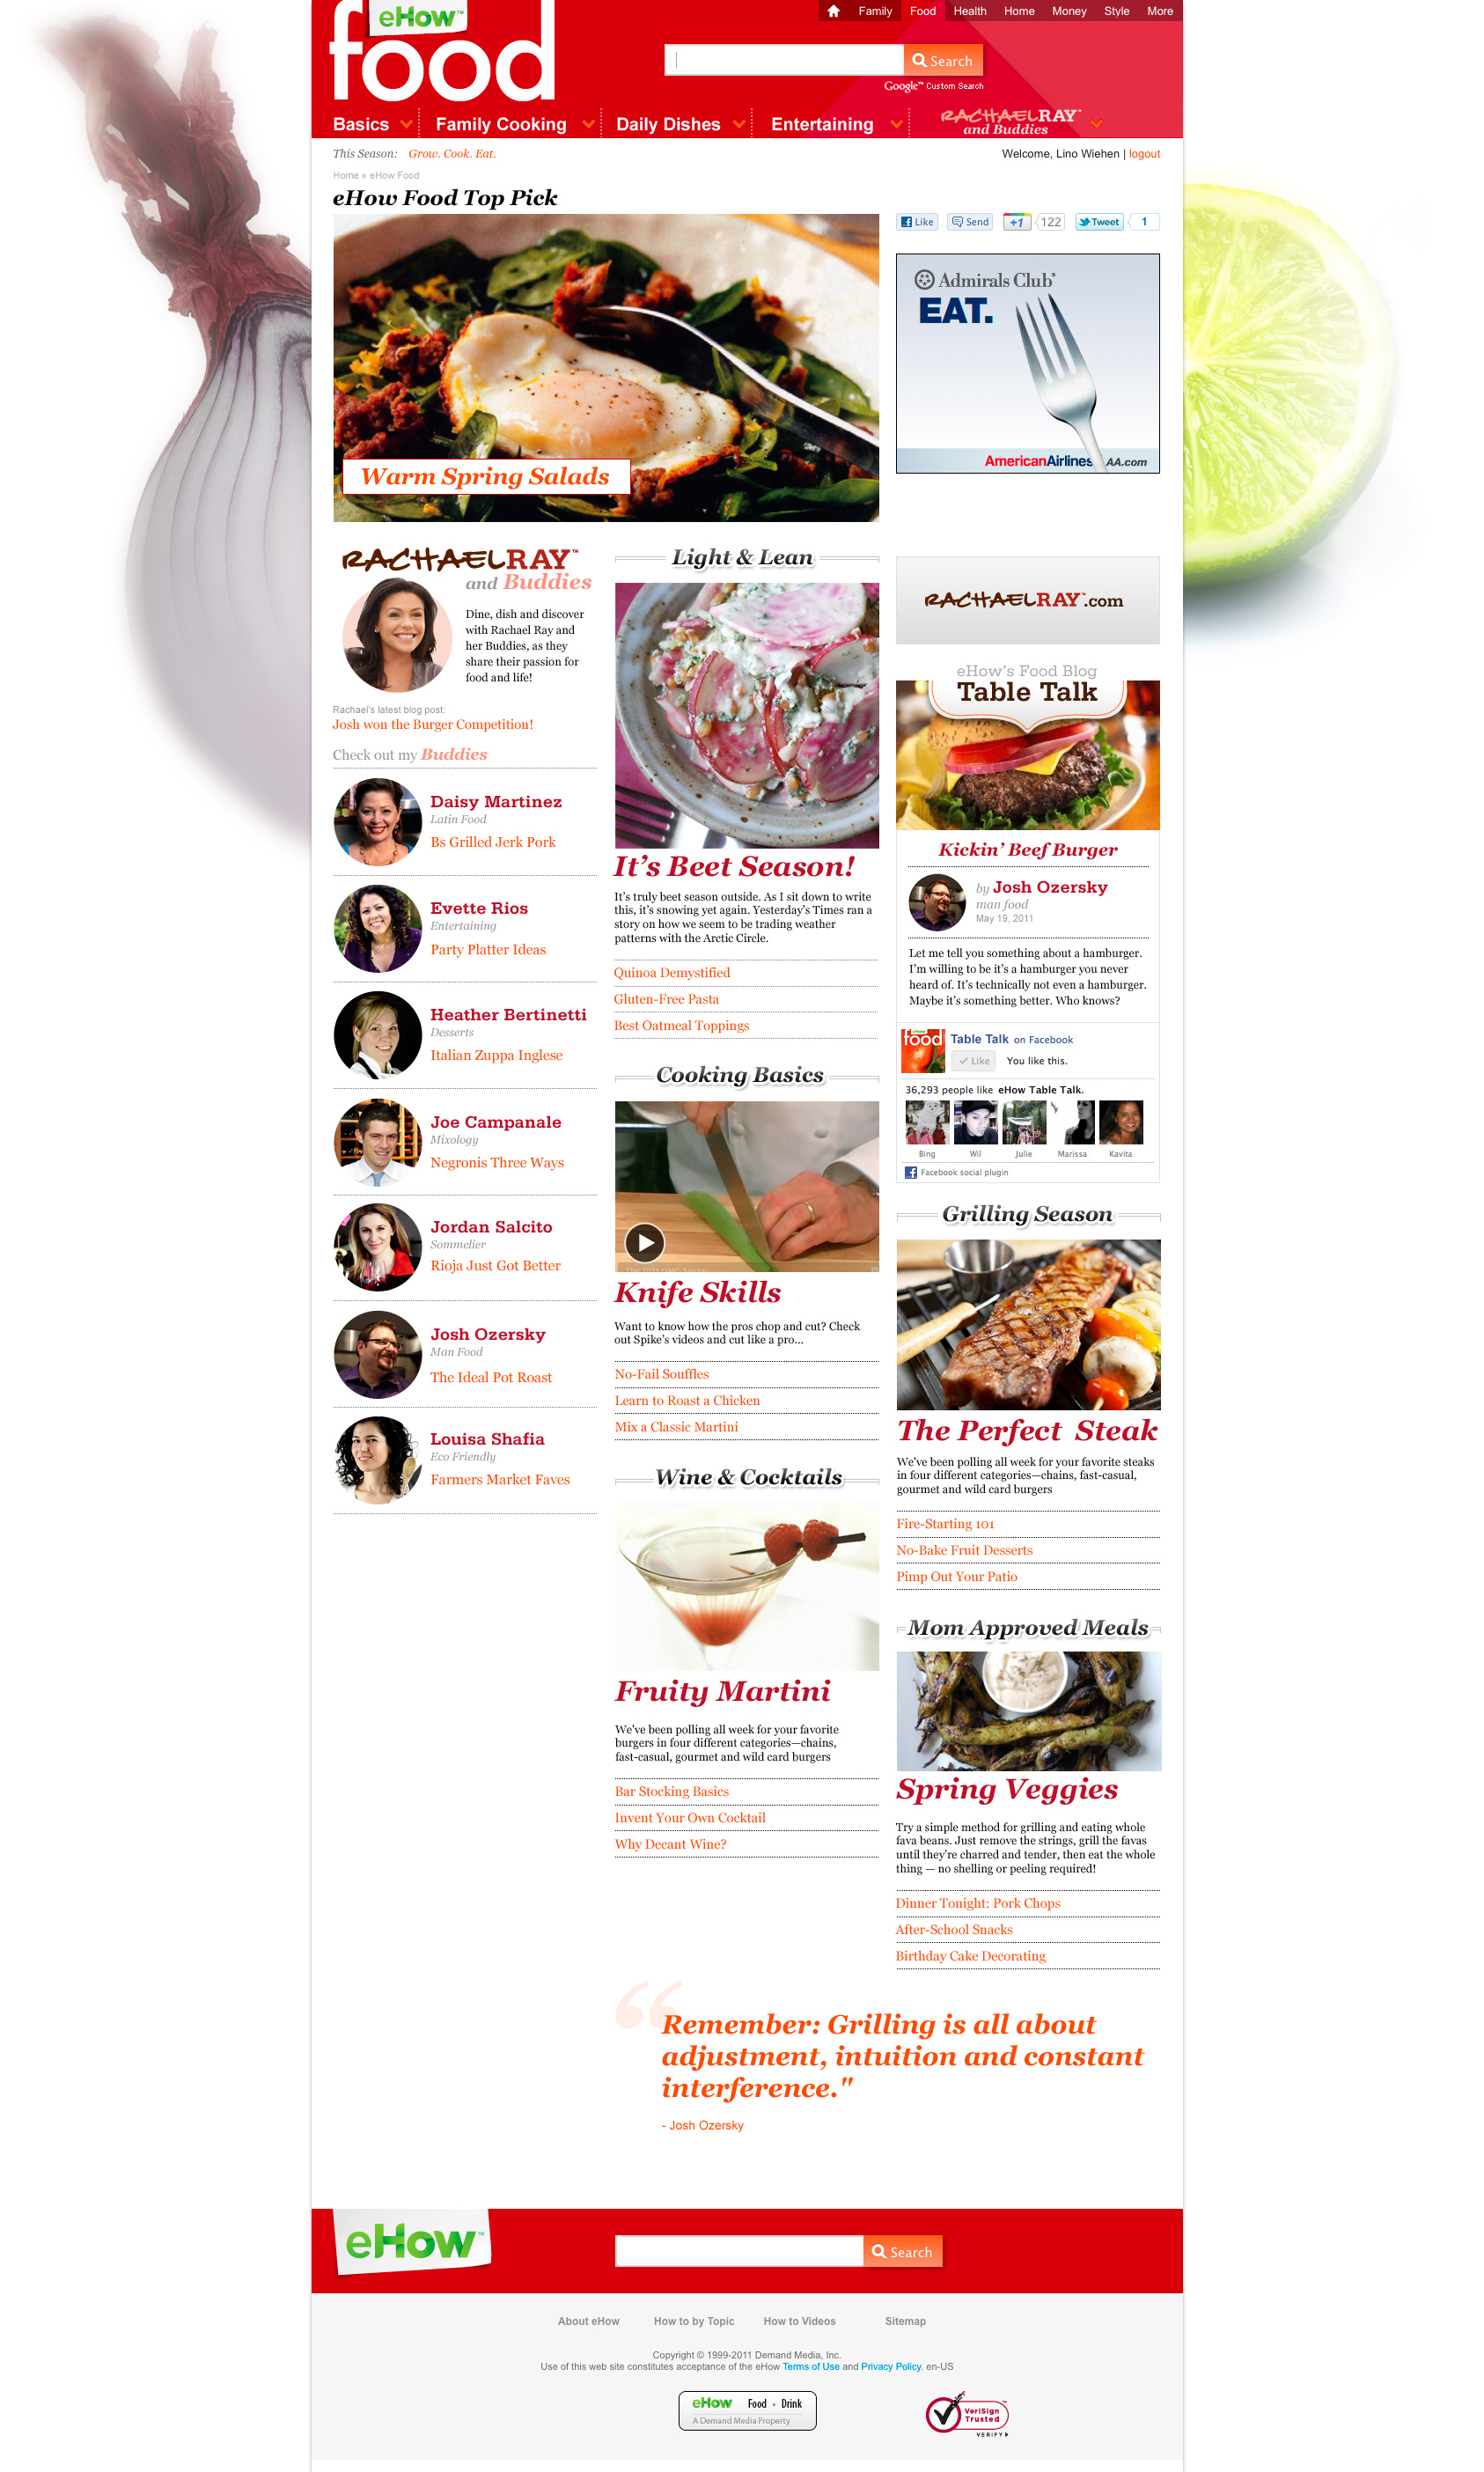 01_Rachael_Ray_FOOD_FRONTPAGE.jpg